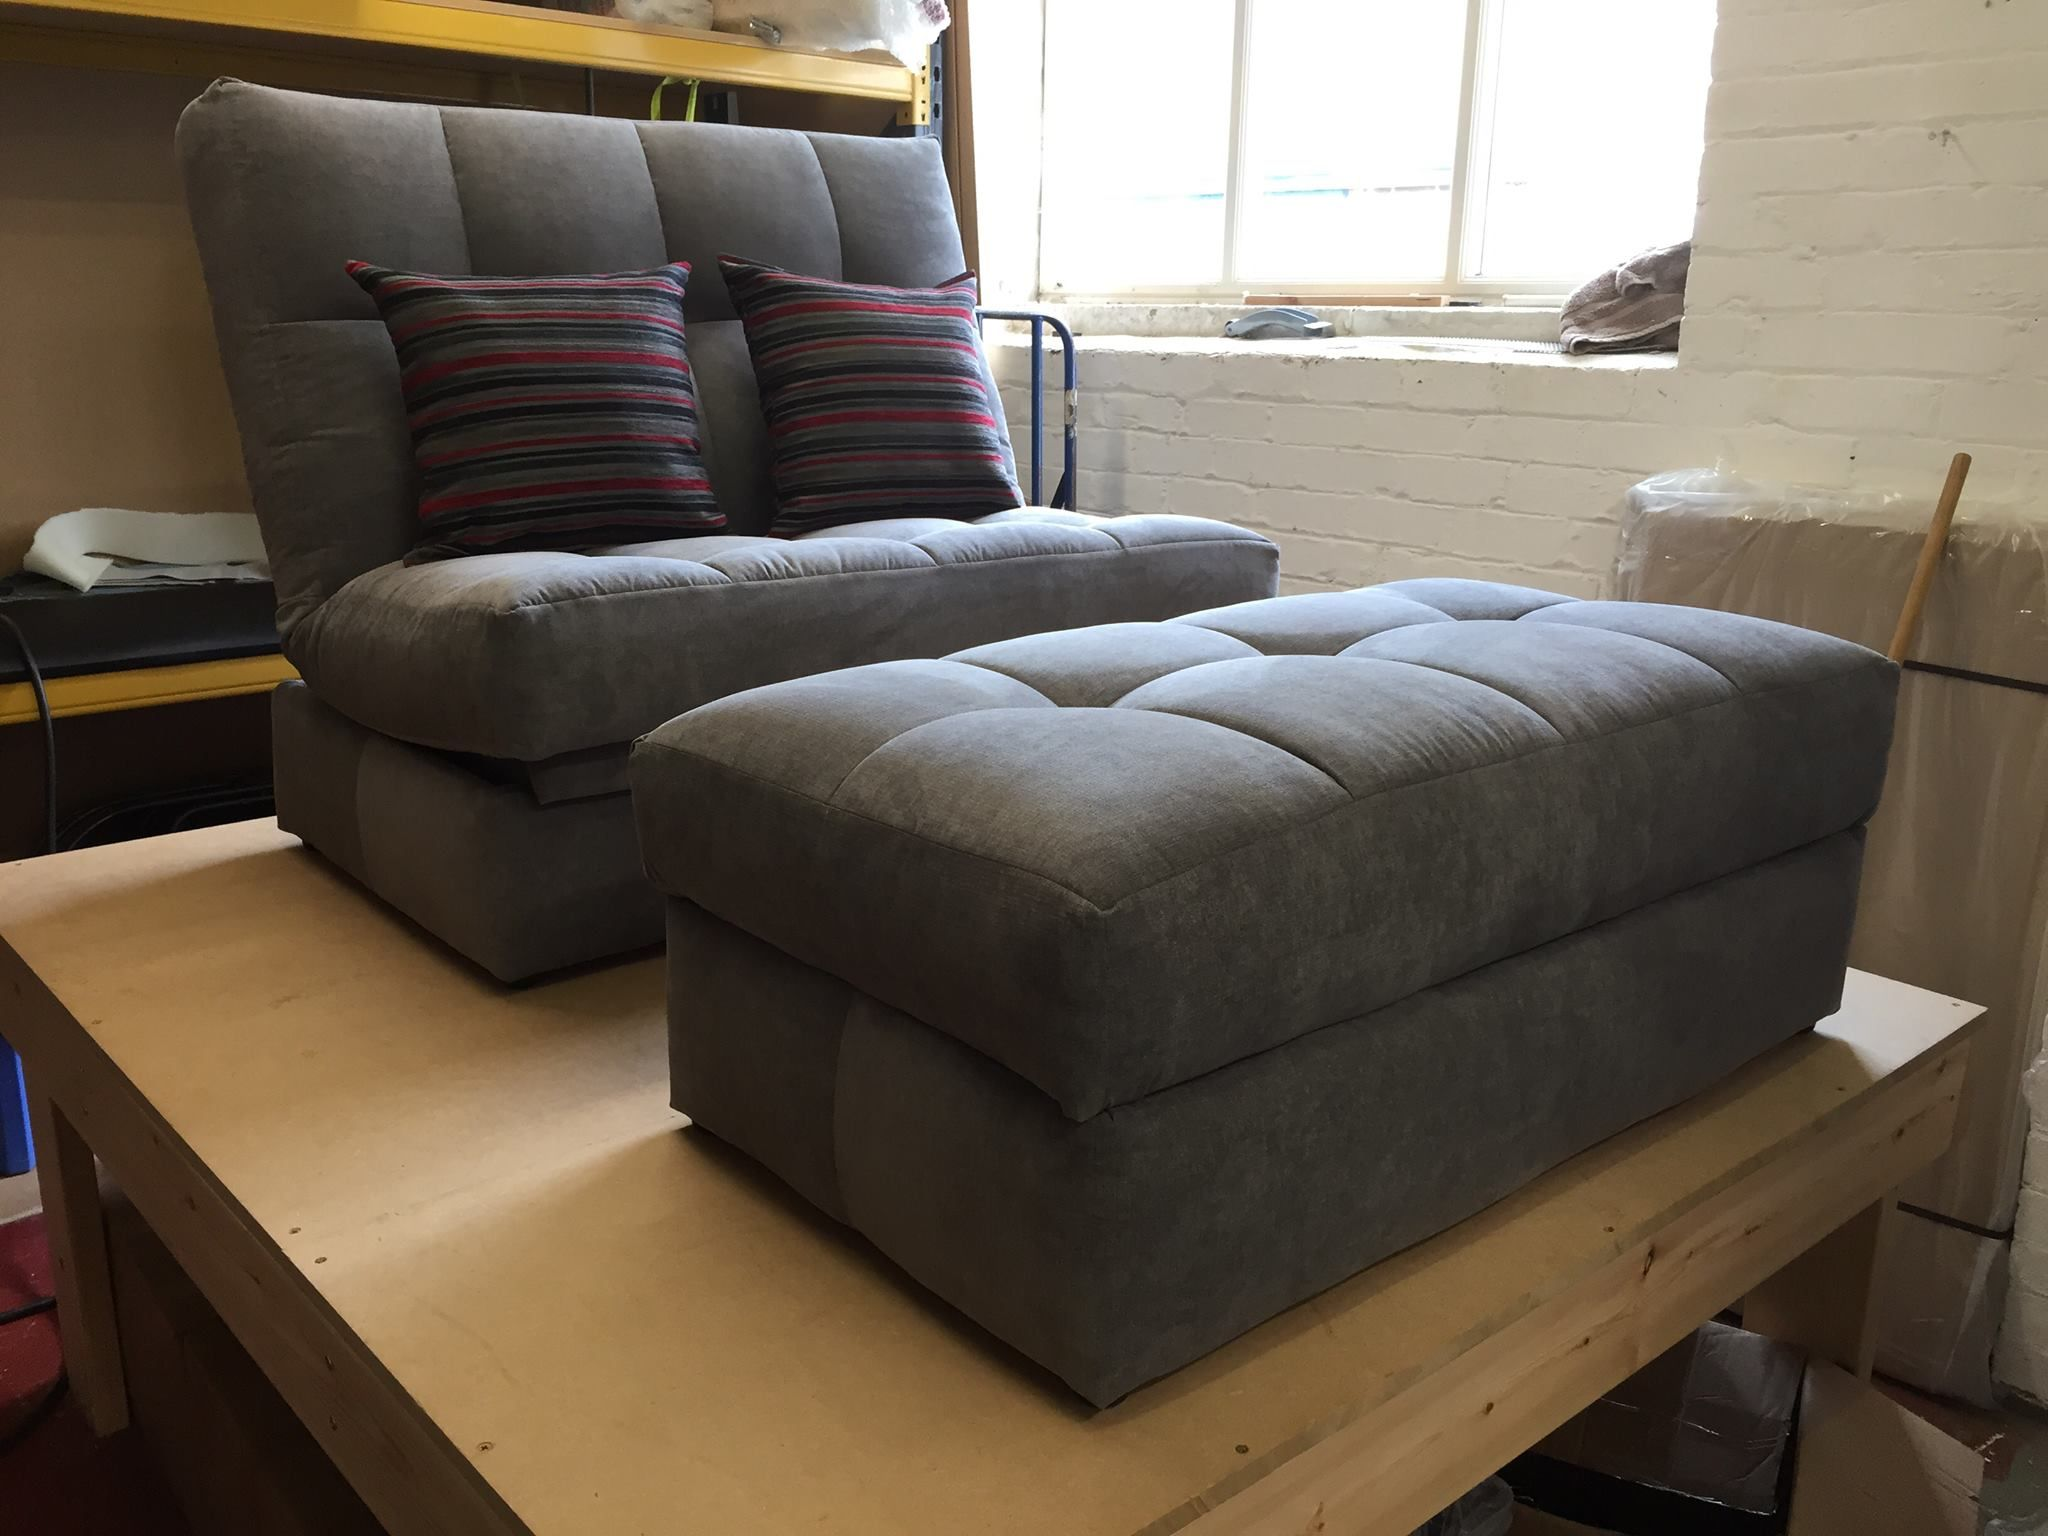 Elegant Dalton Sofa Bed Plus Storage Box. Designed And Made At Sofabed Barn,  Queensbury,